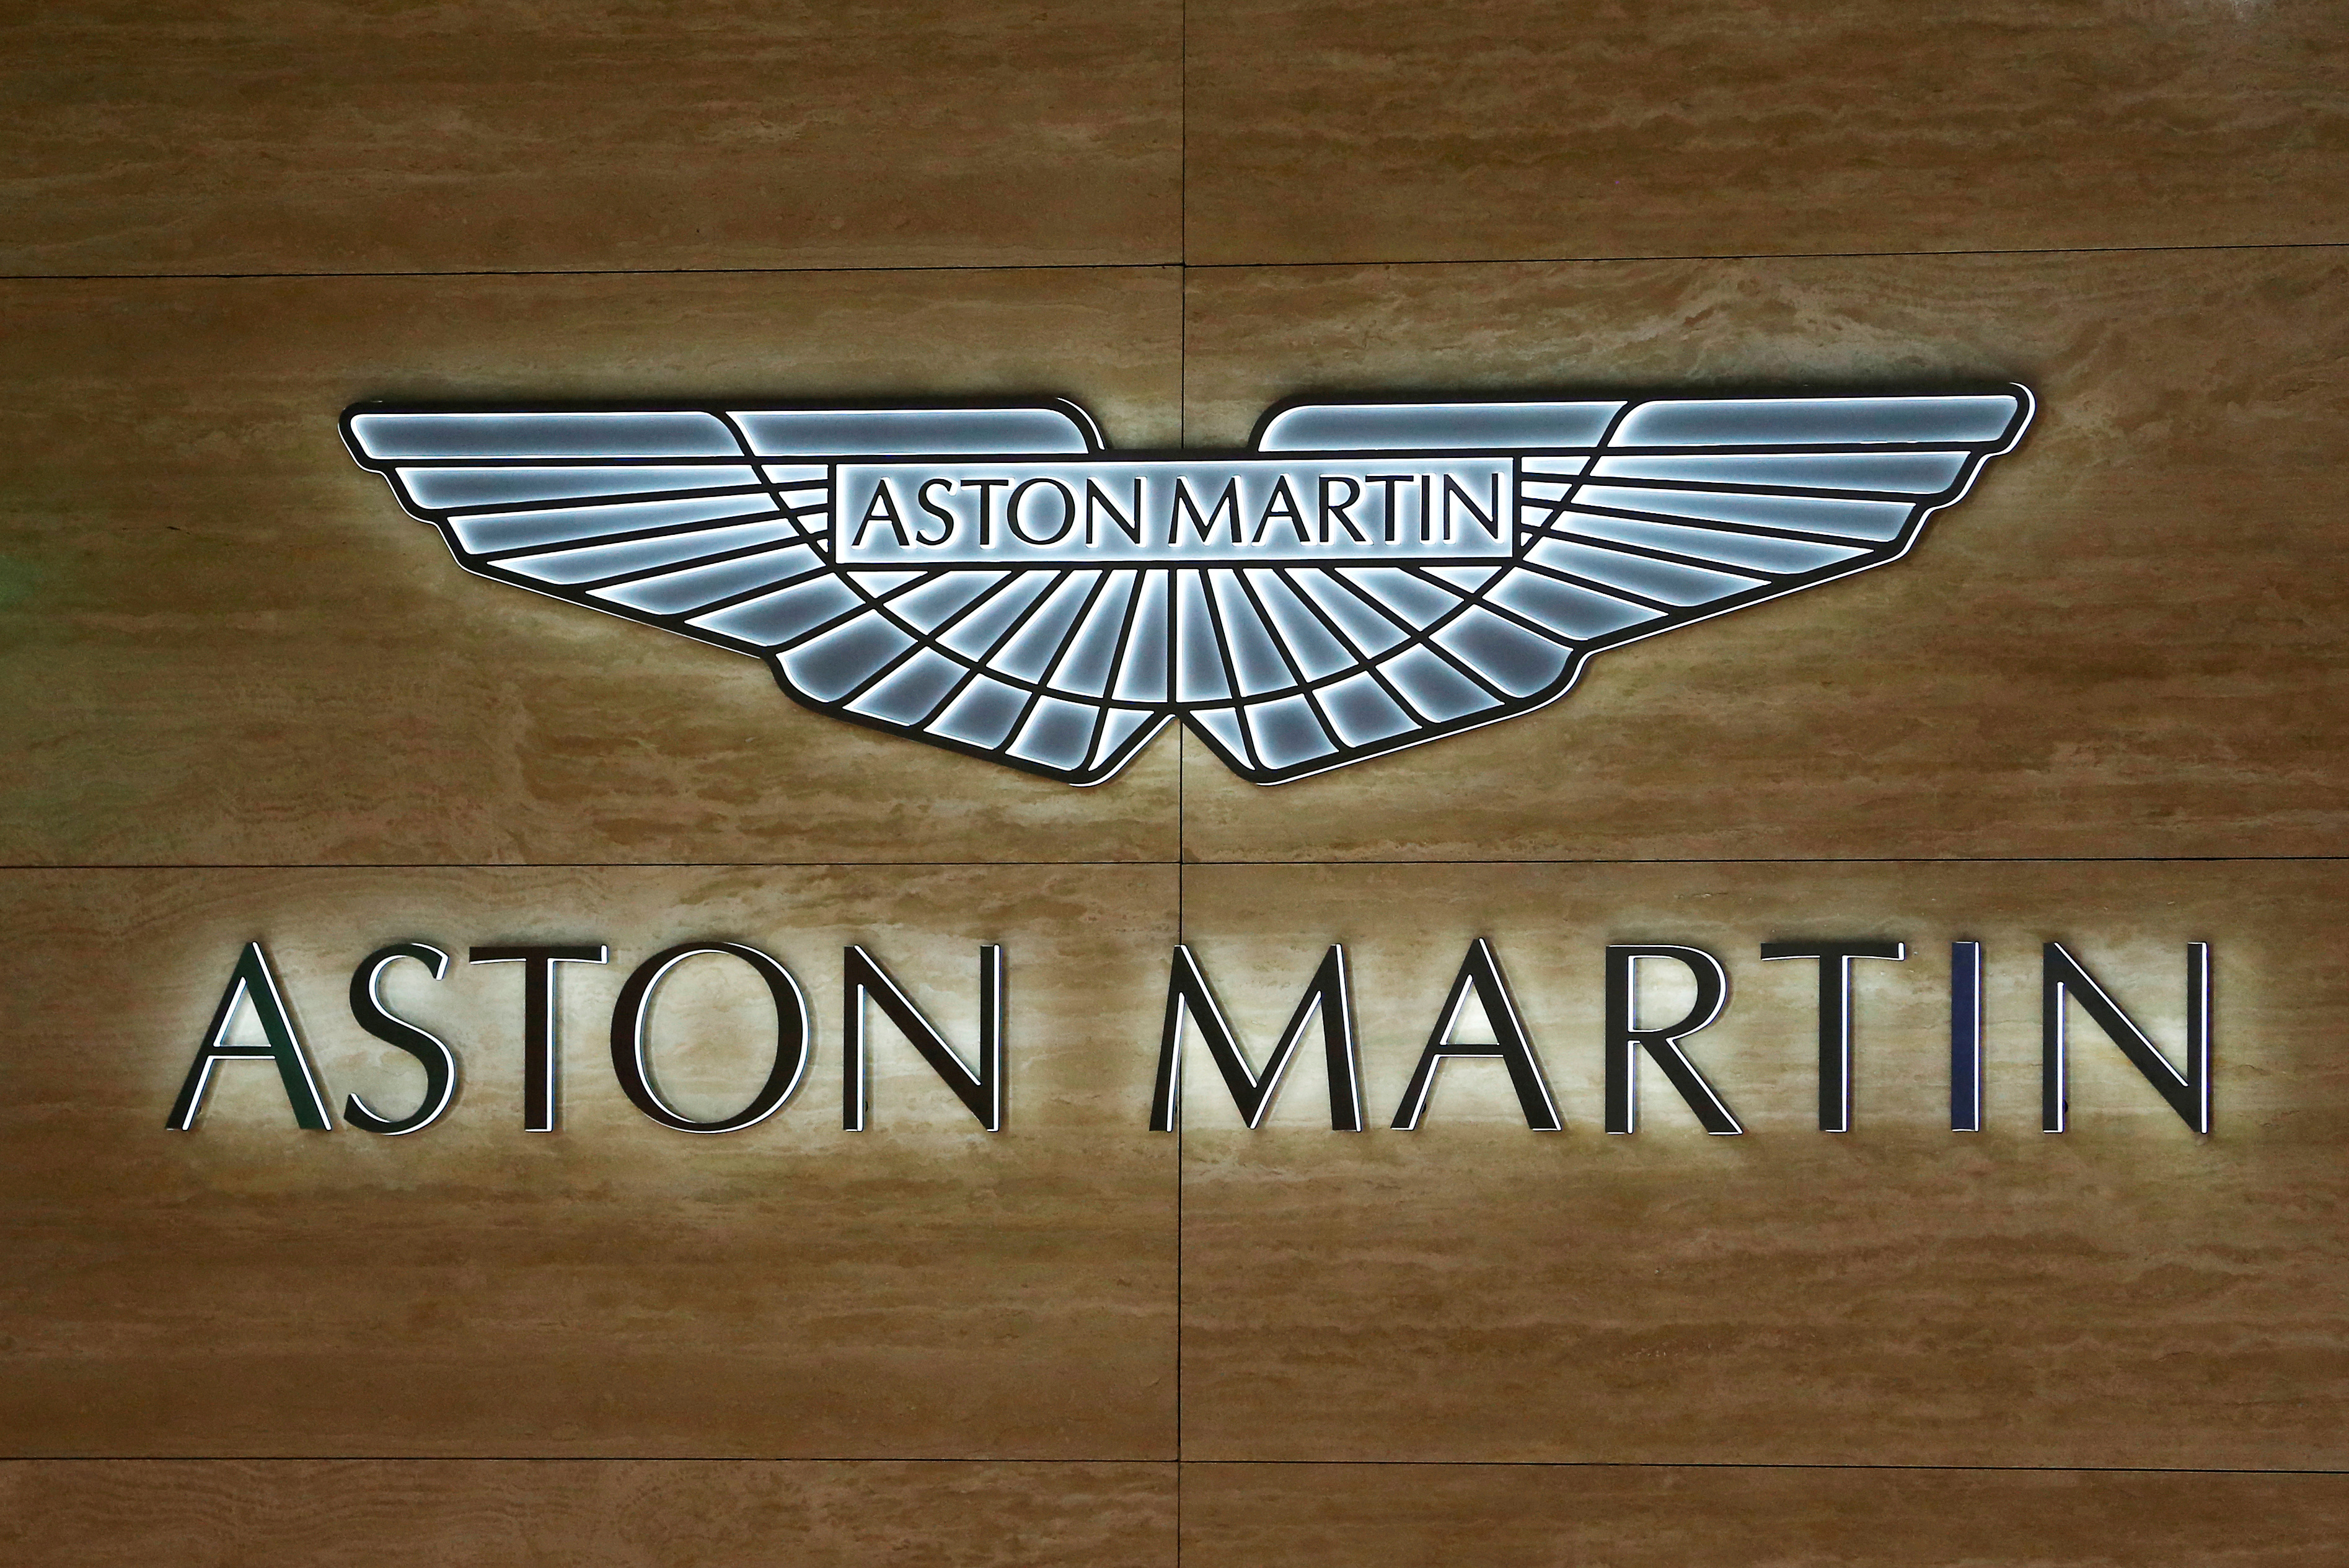 An Aston Martin logo is displayed at the 89th Geneva International Motor Show in Geneva, Switzerland March 5, 2019.  REUTERS/Pierre Albouy/File Photo